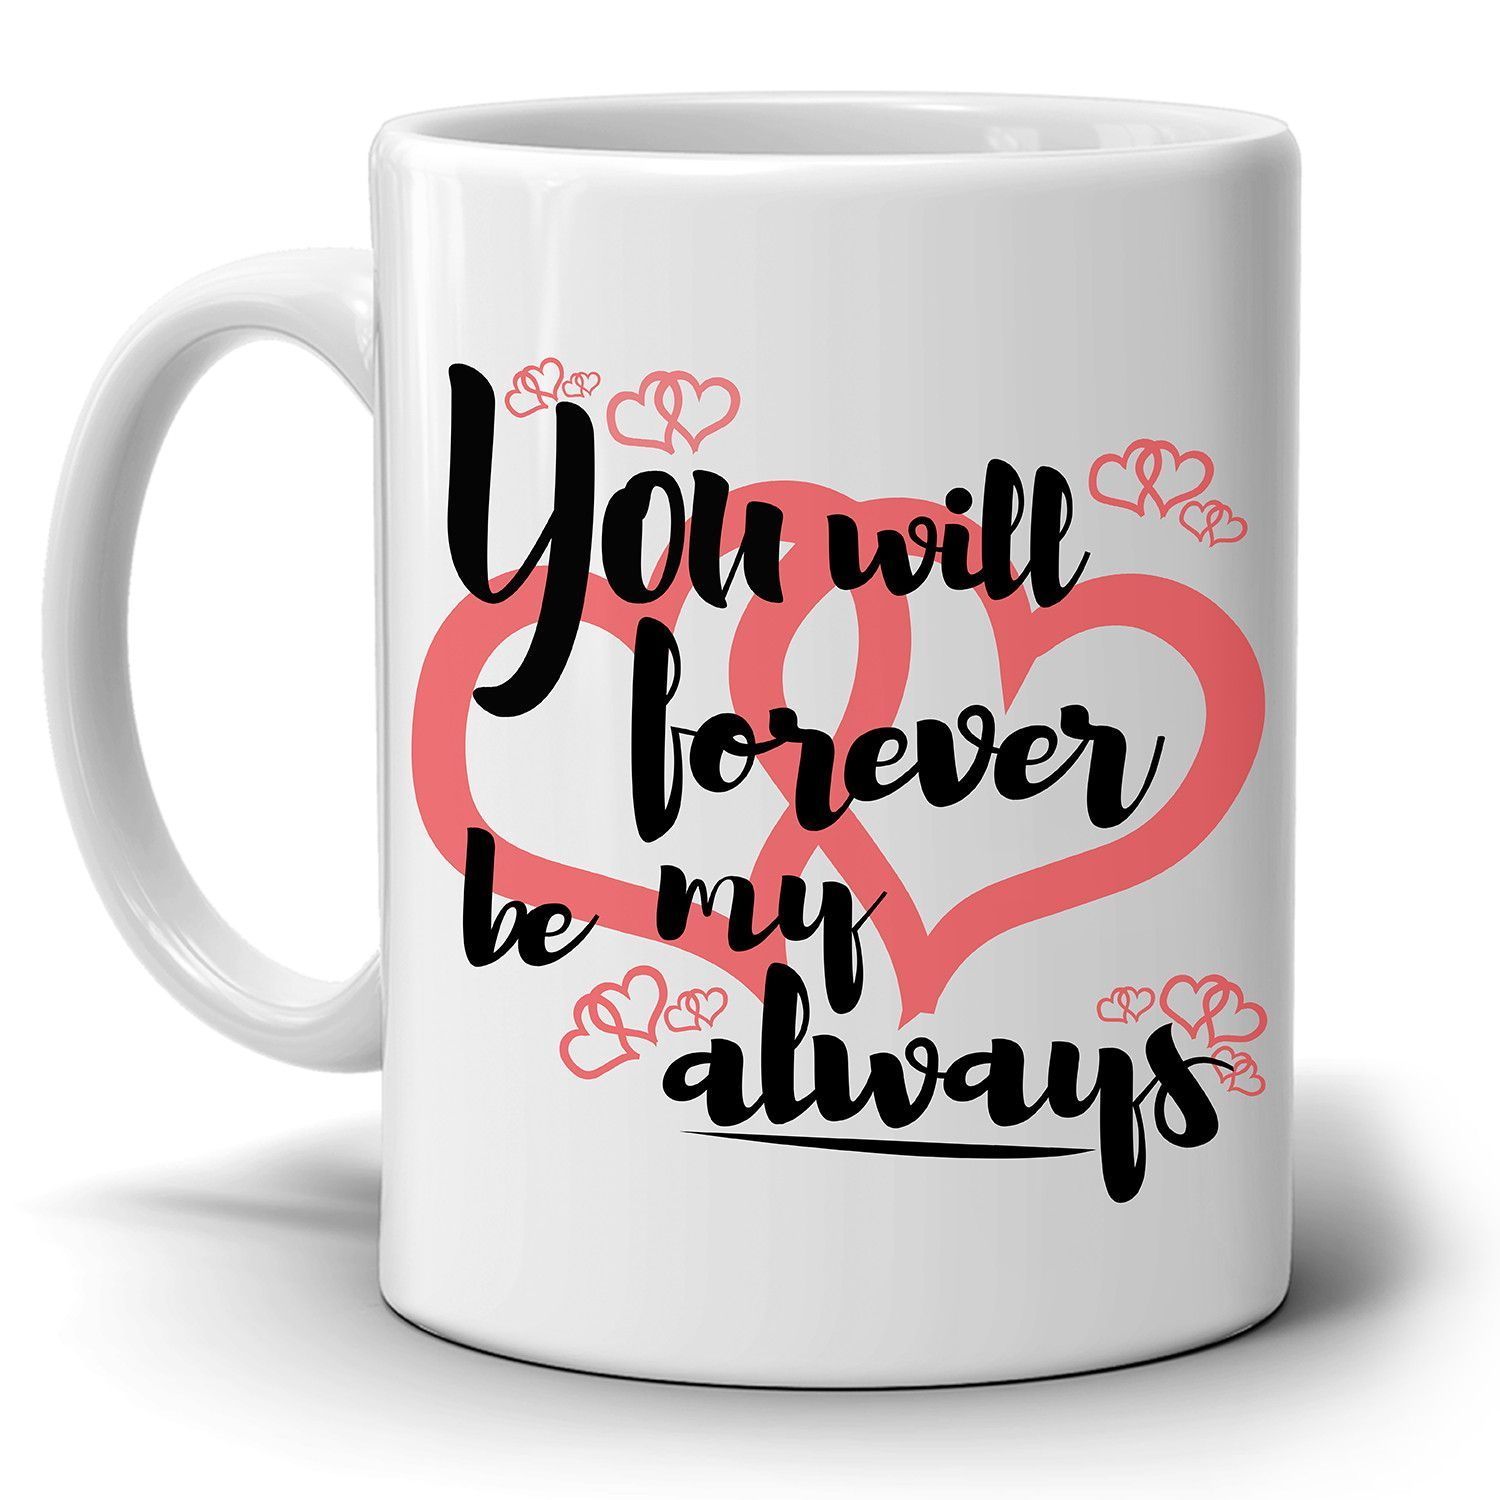 Cute Couples Marriage Gifts Coffee Mug, Wedding